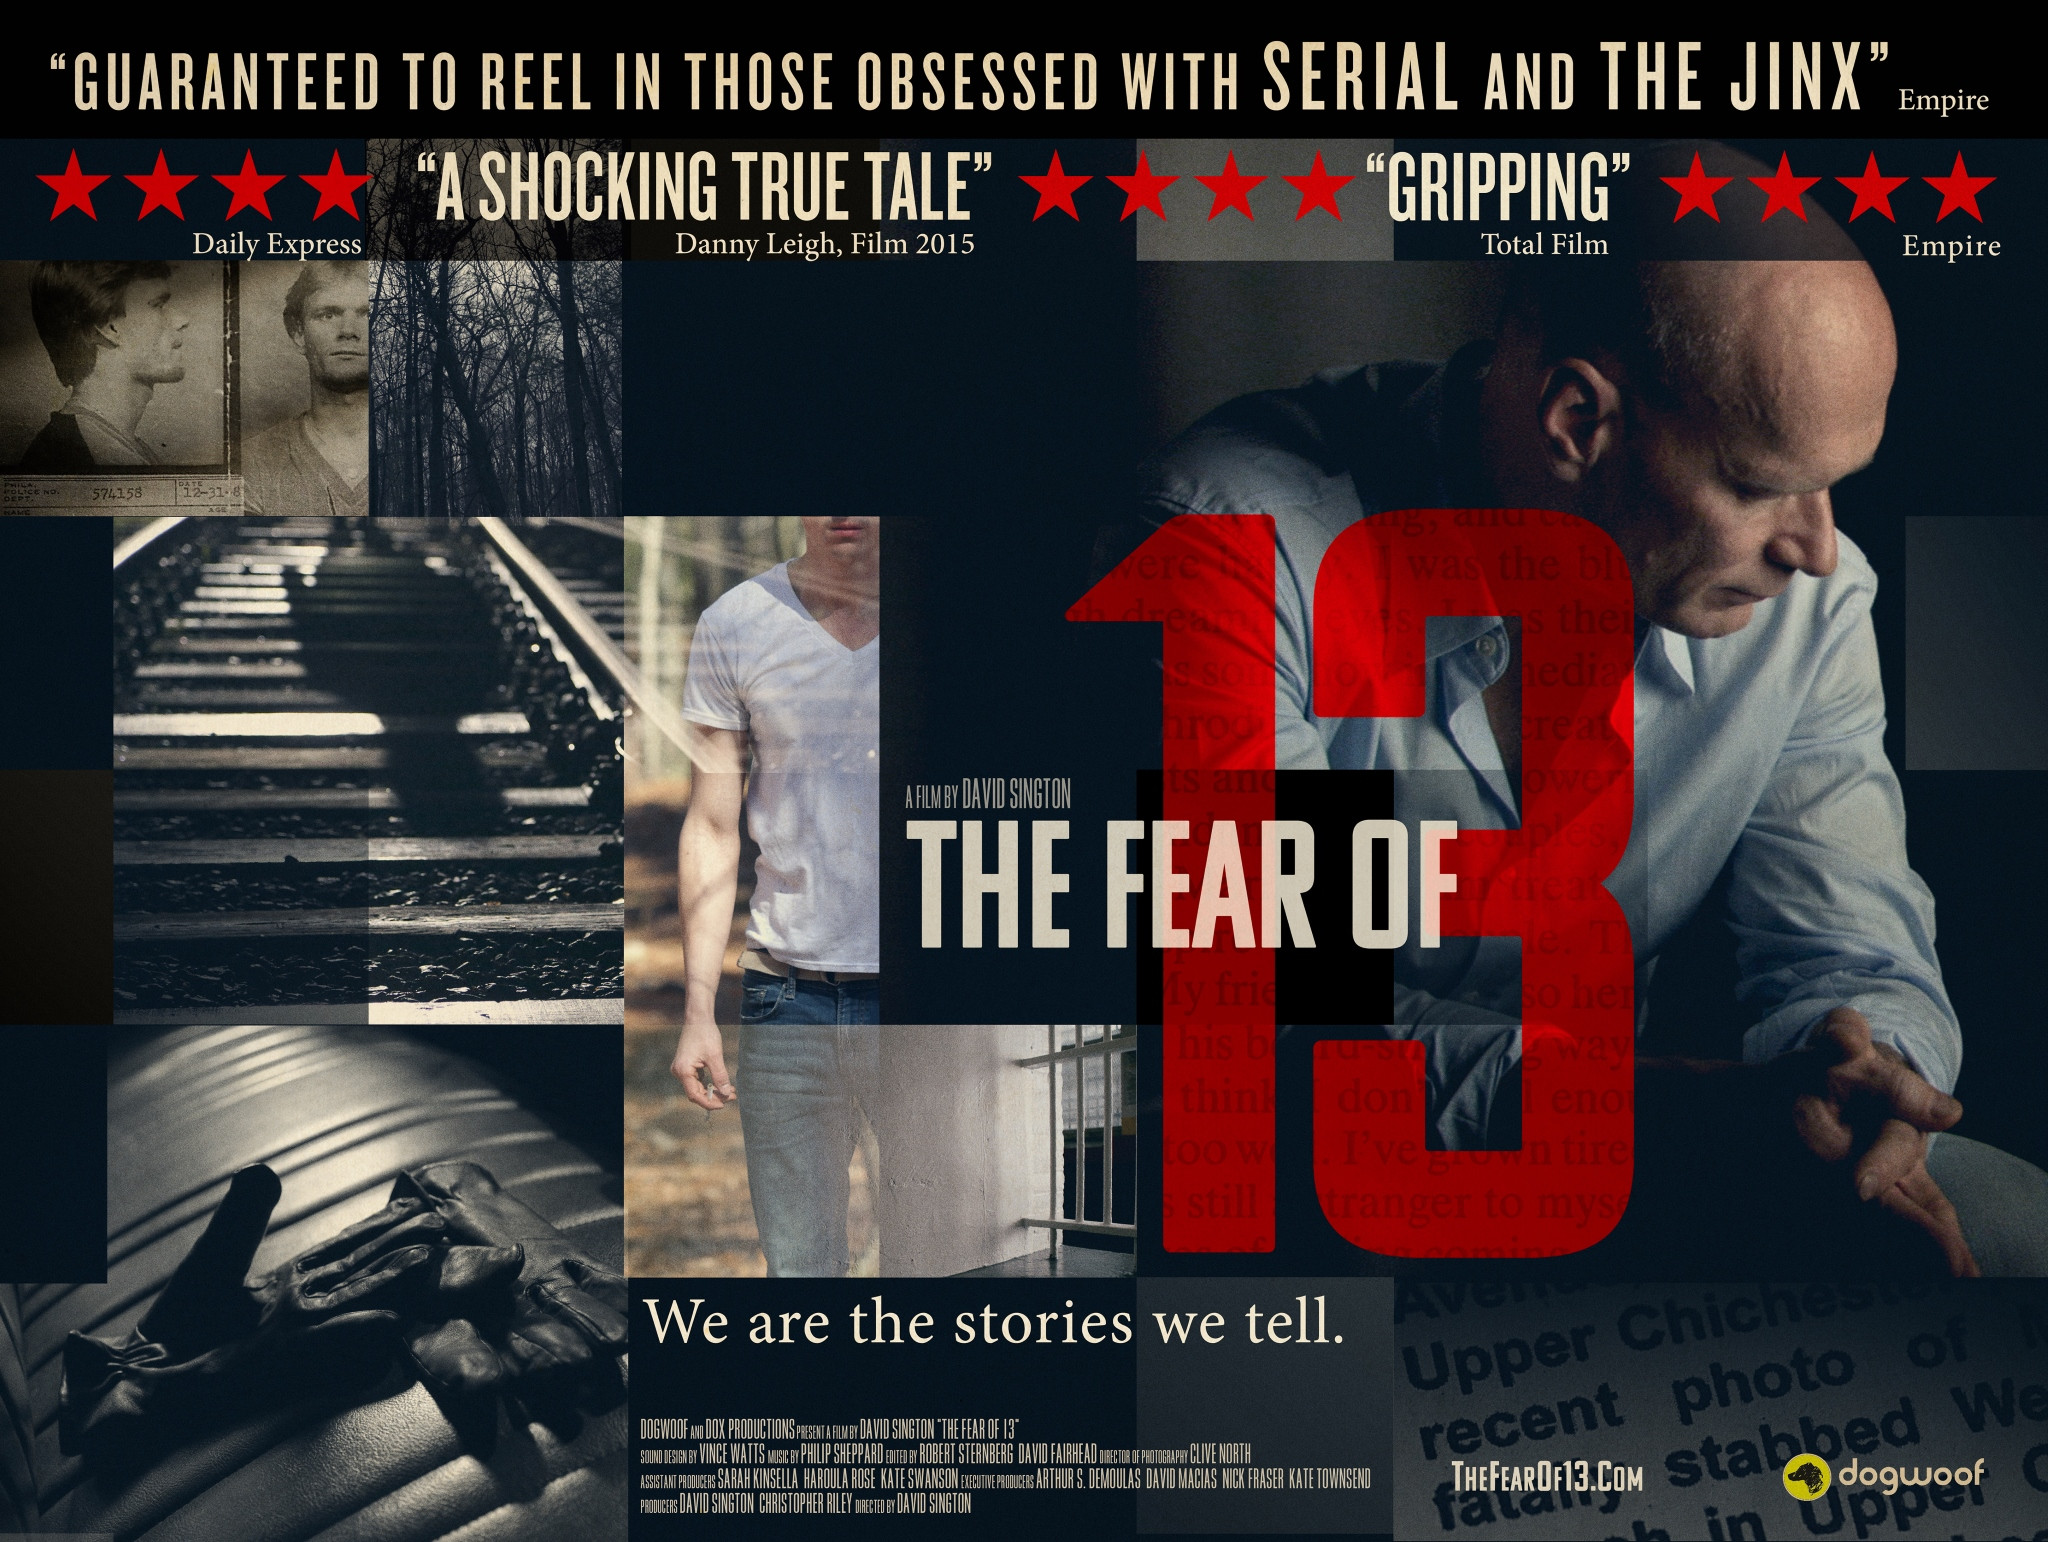 If you're in the mood for a gripping Netflix documentary